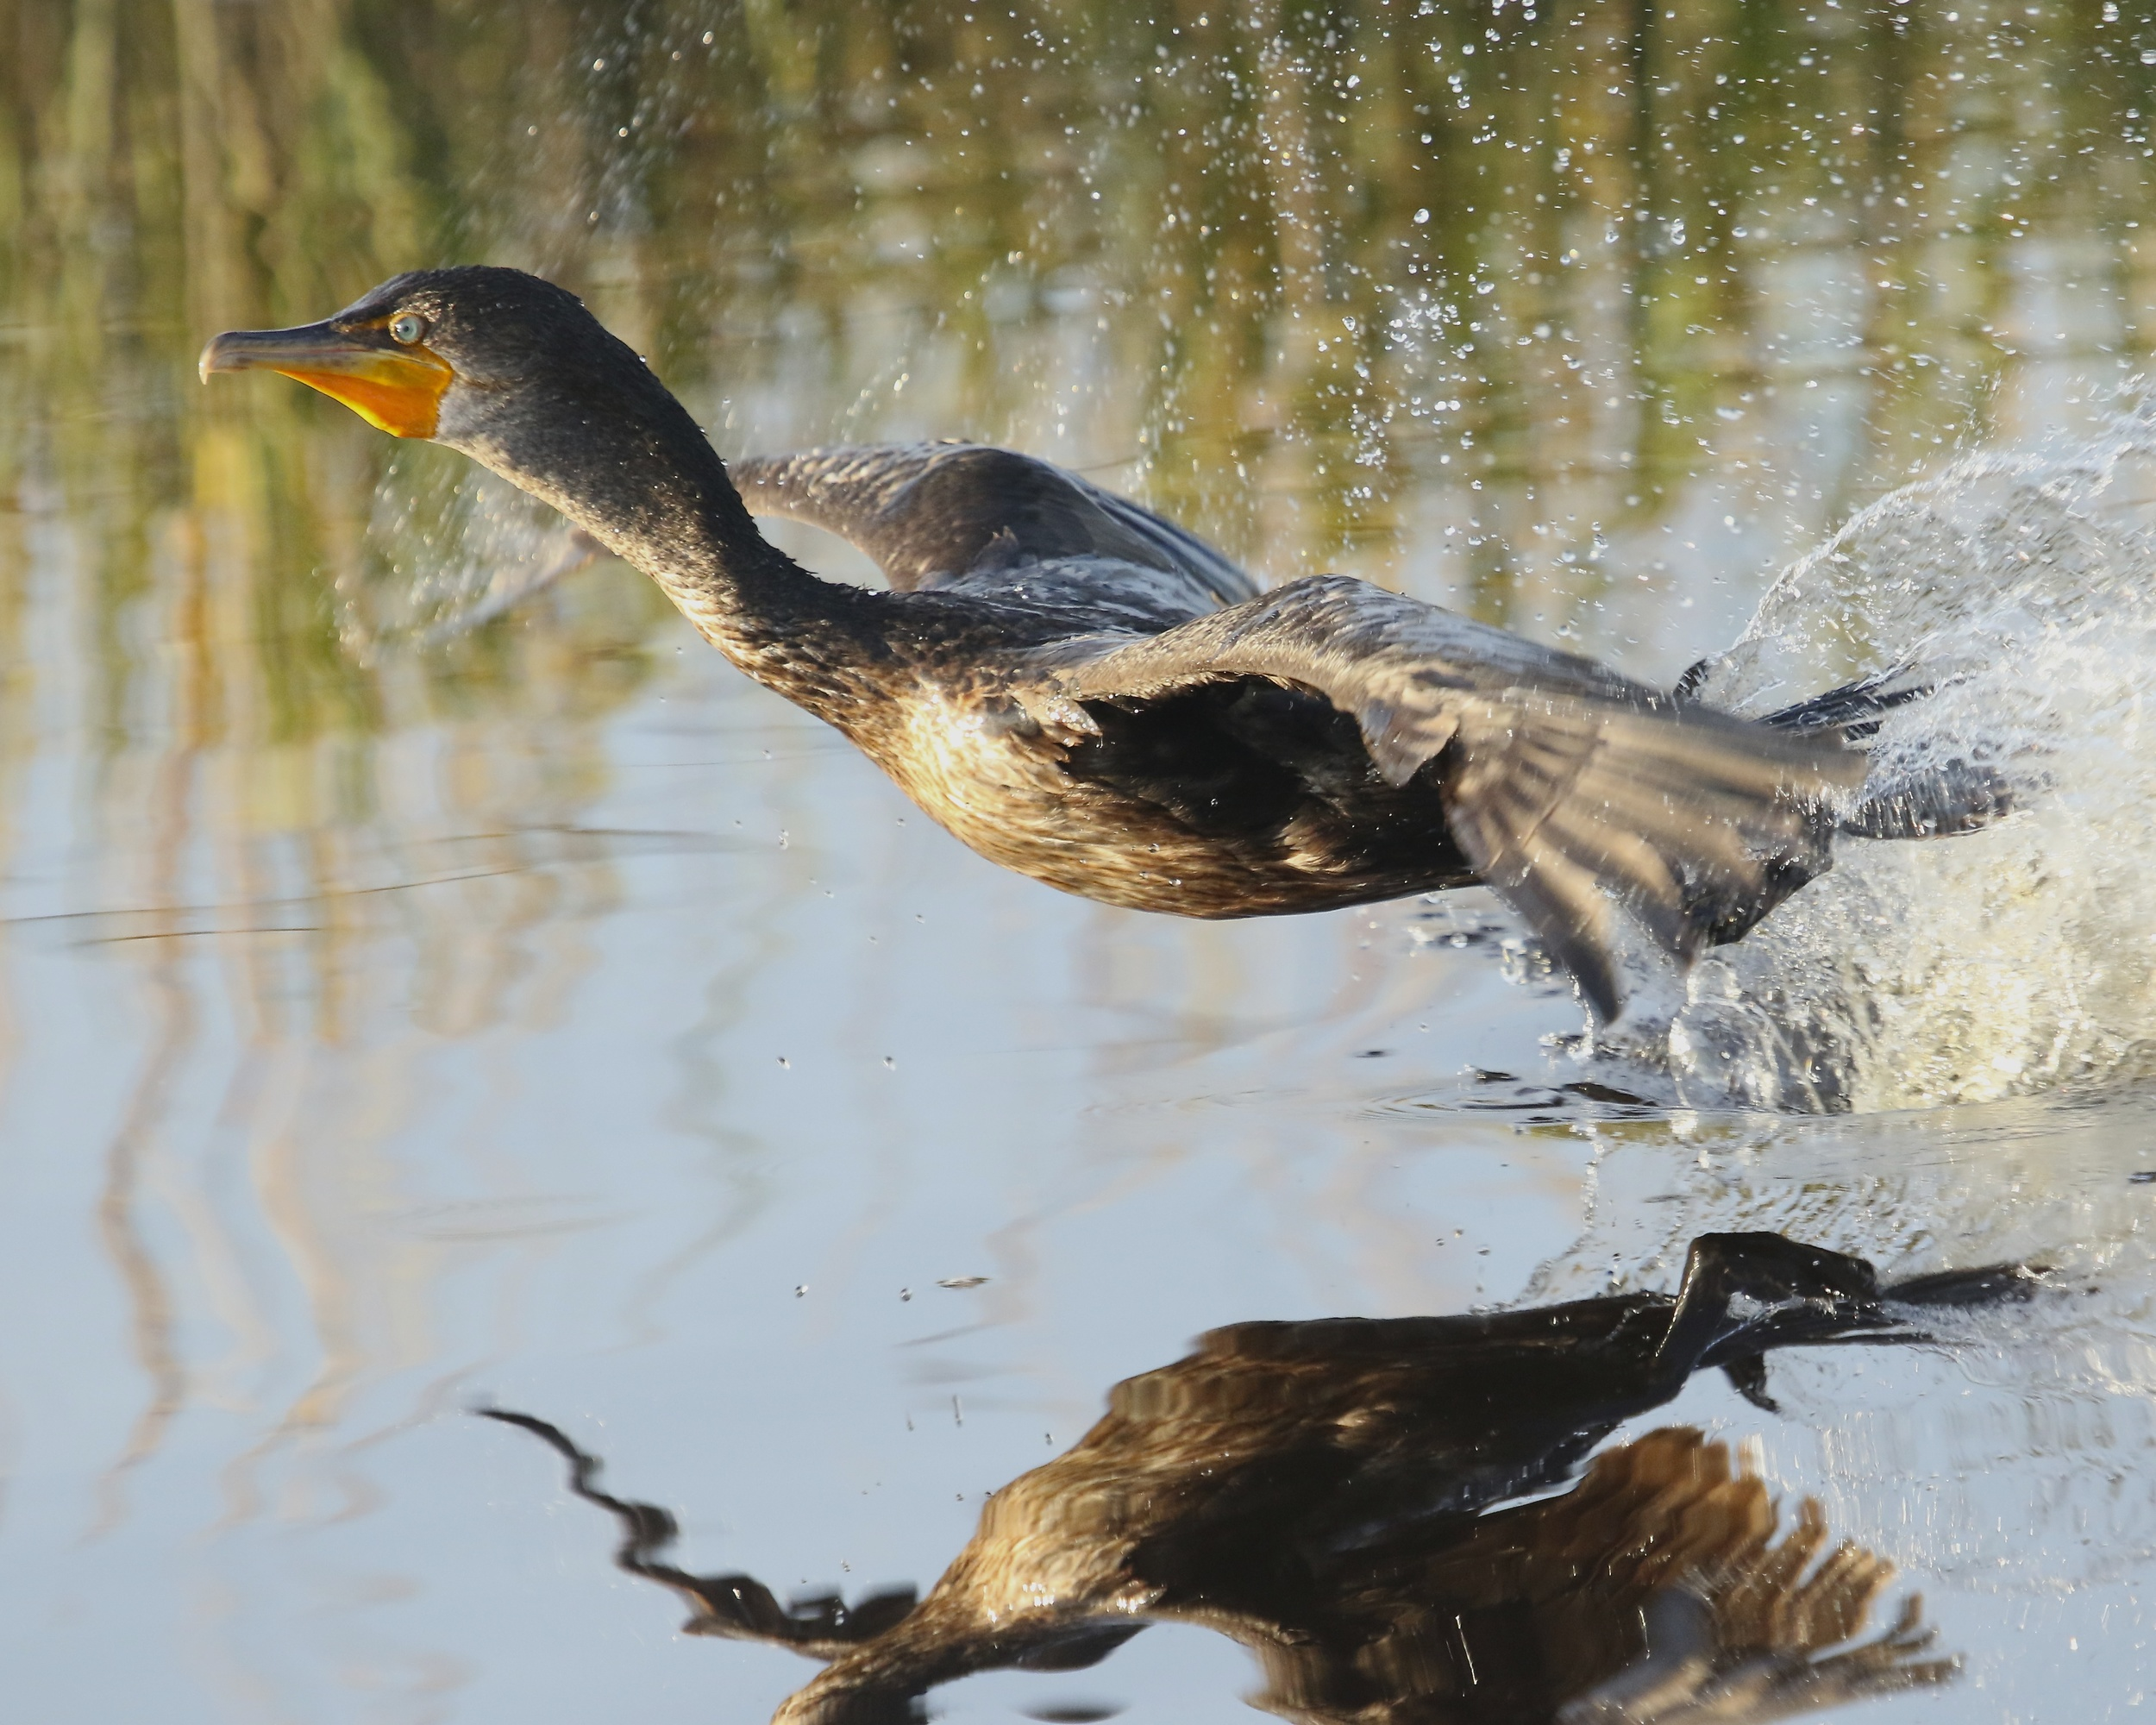 The cormorant suddenly launches skyward like a rocket taking off!